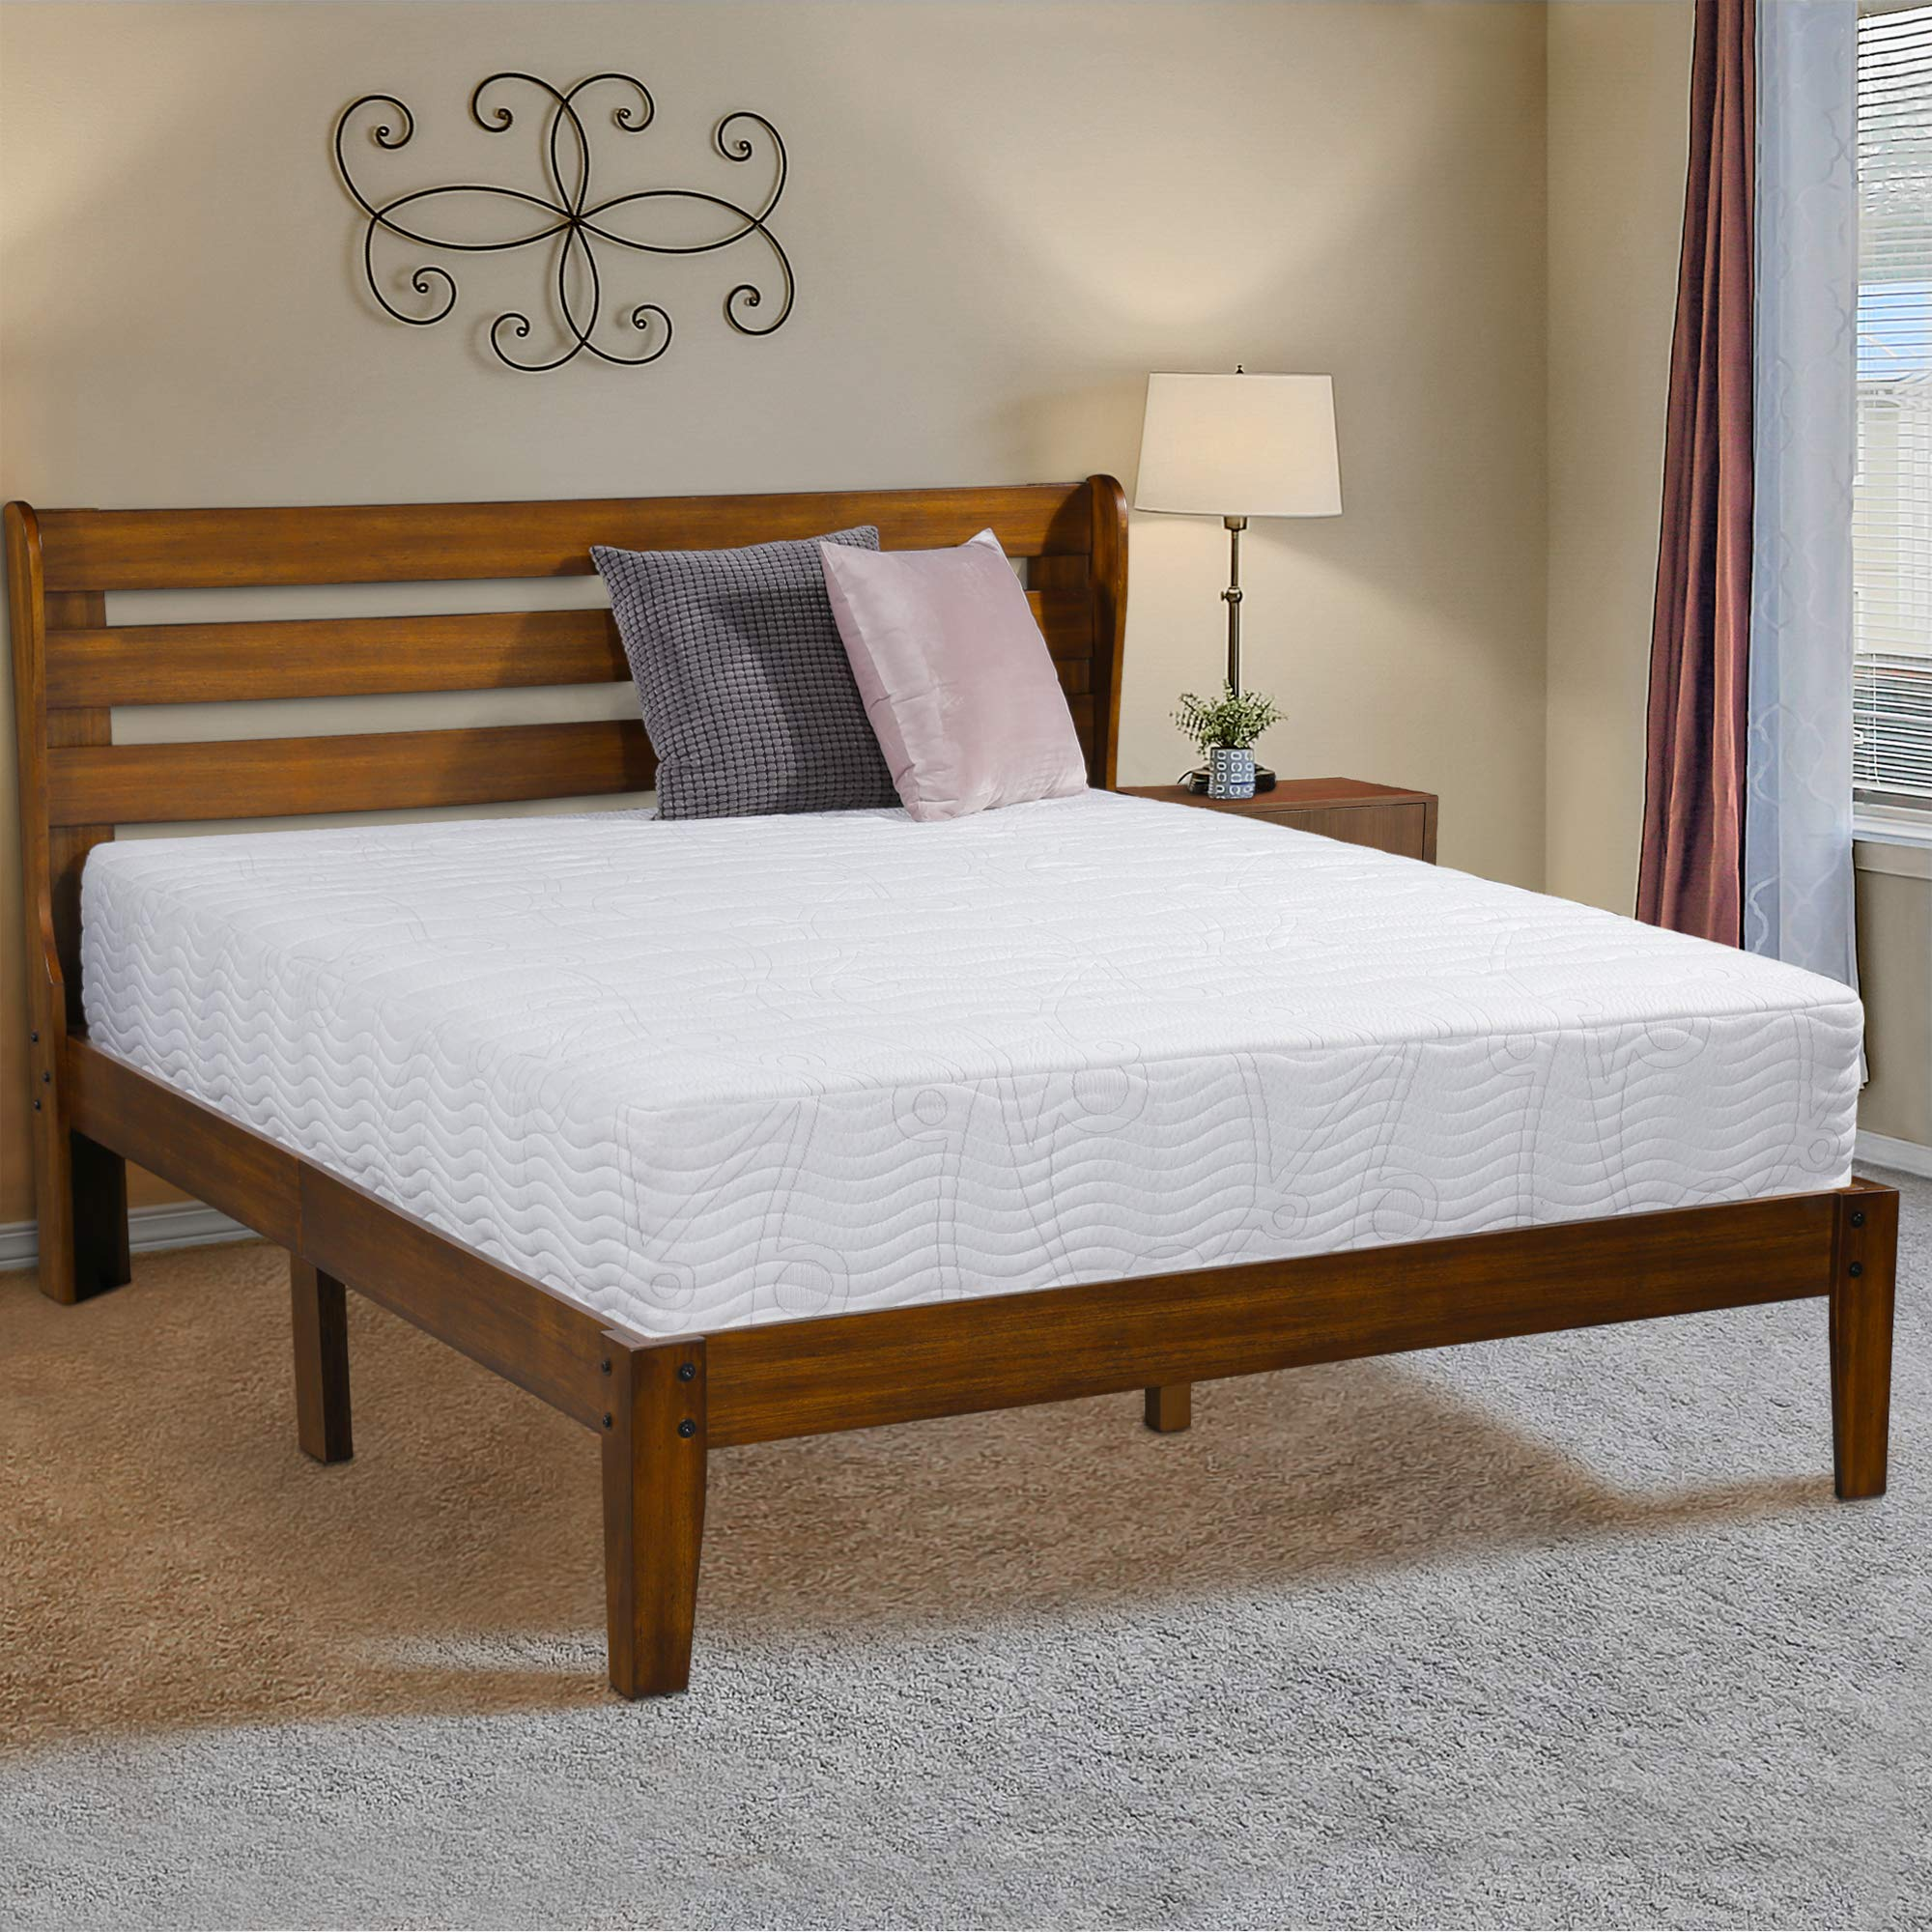 Ecos Living 14 Inch High Rustic Solid Wood Platform Bed Frame with Headboard/No Box Spring/No Squeak (Brown, Queen)